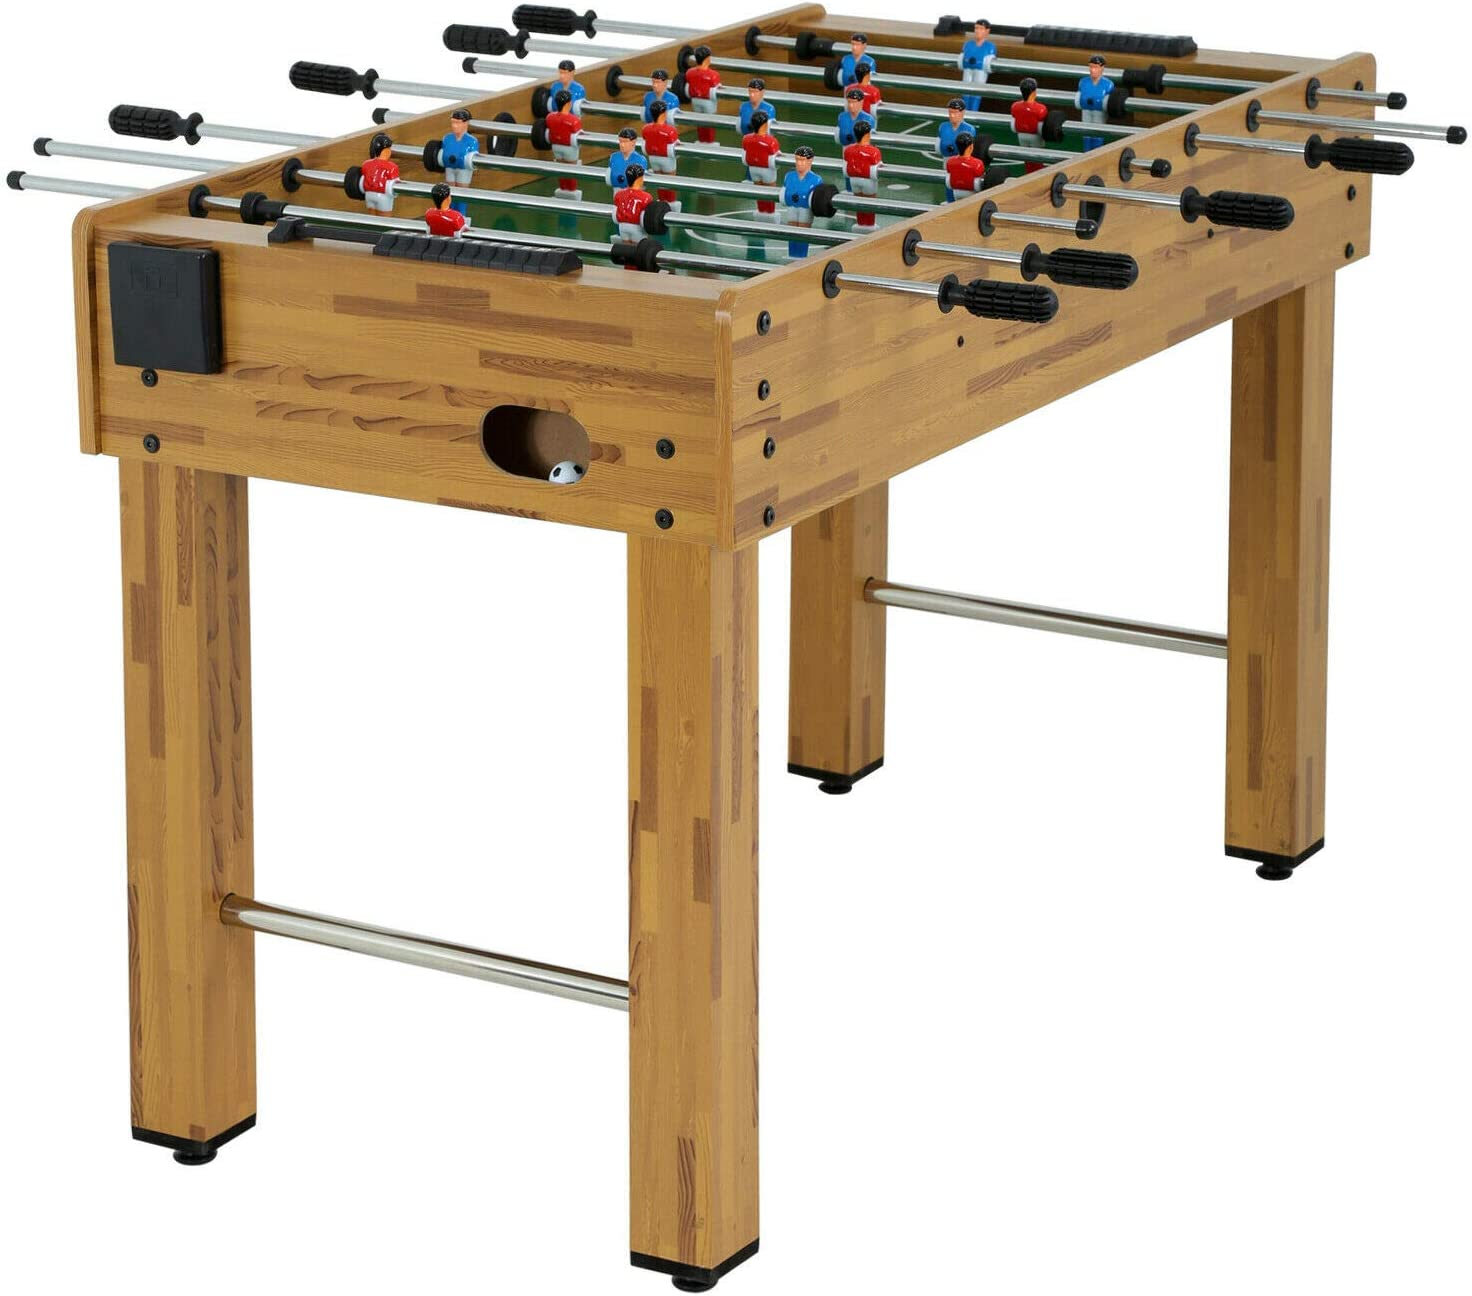 GEEKER 48-inch Game price Foosball Table W Balls Indoo 2 Store Holders Cup